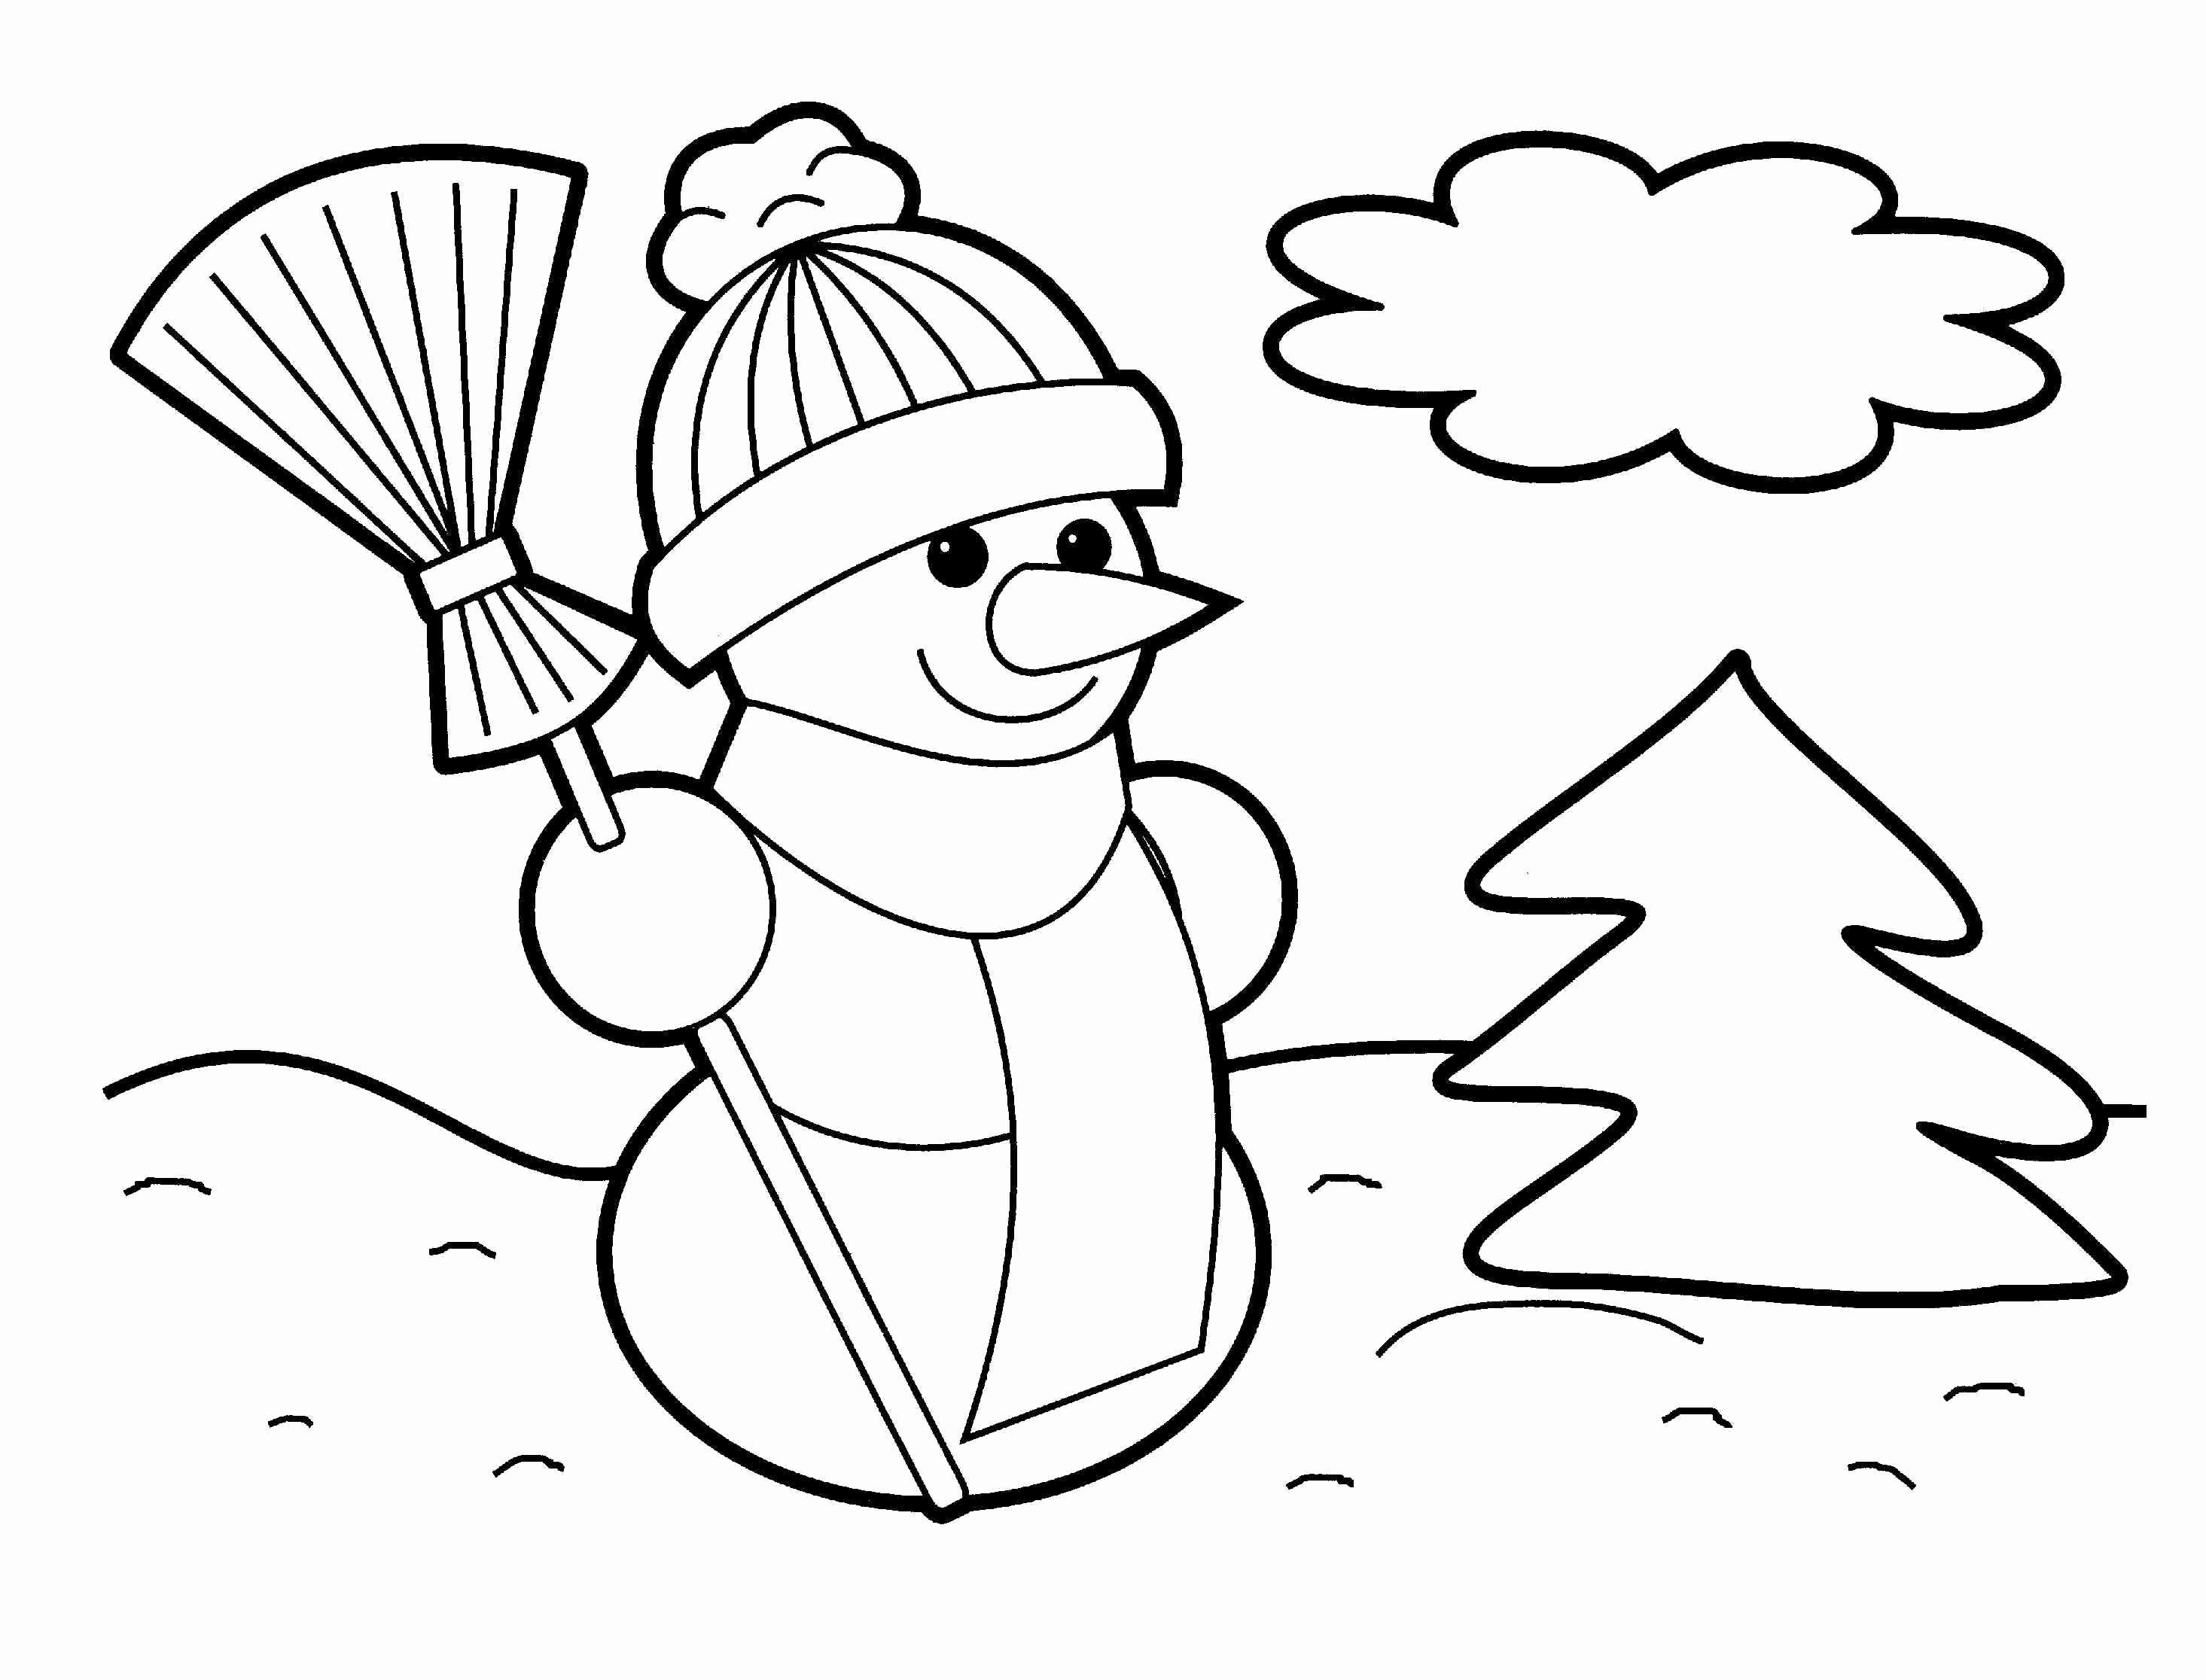 Santa Claus Coloring Images With Printable Pictures Of Pages Unique